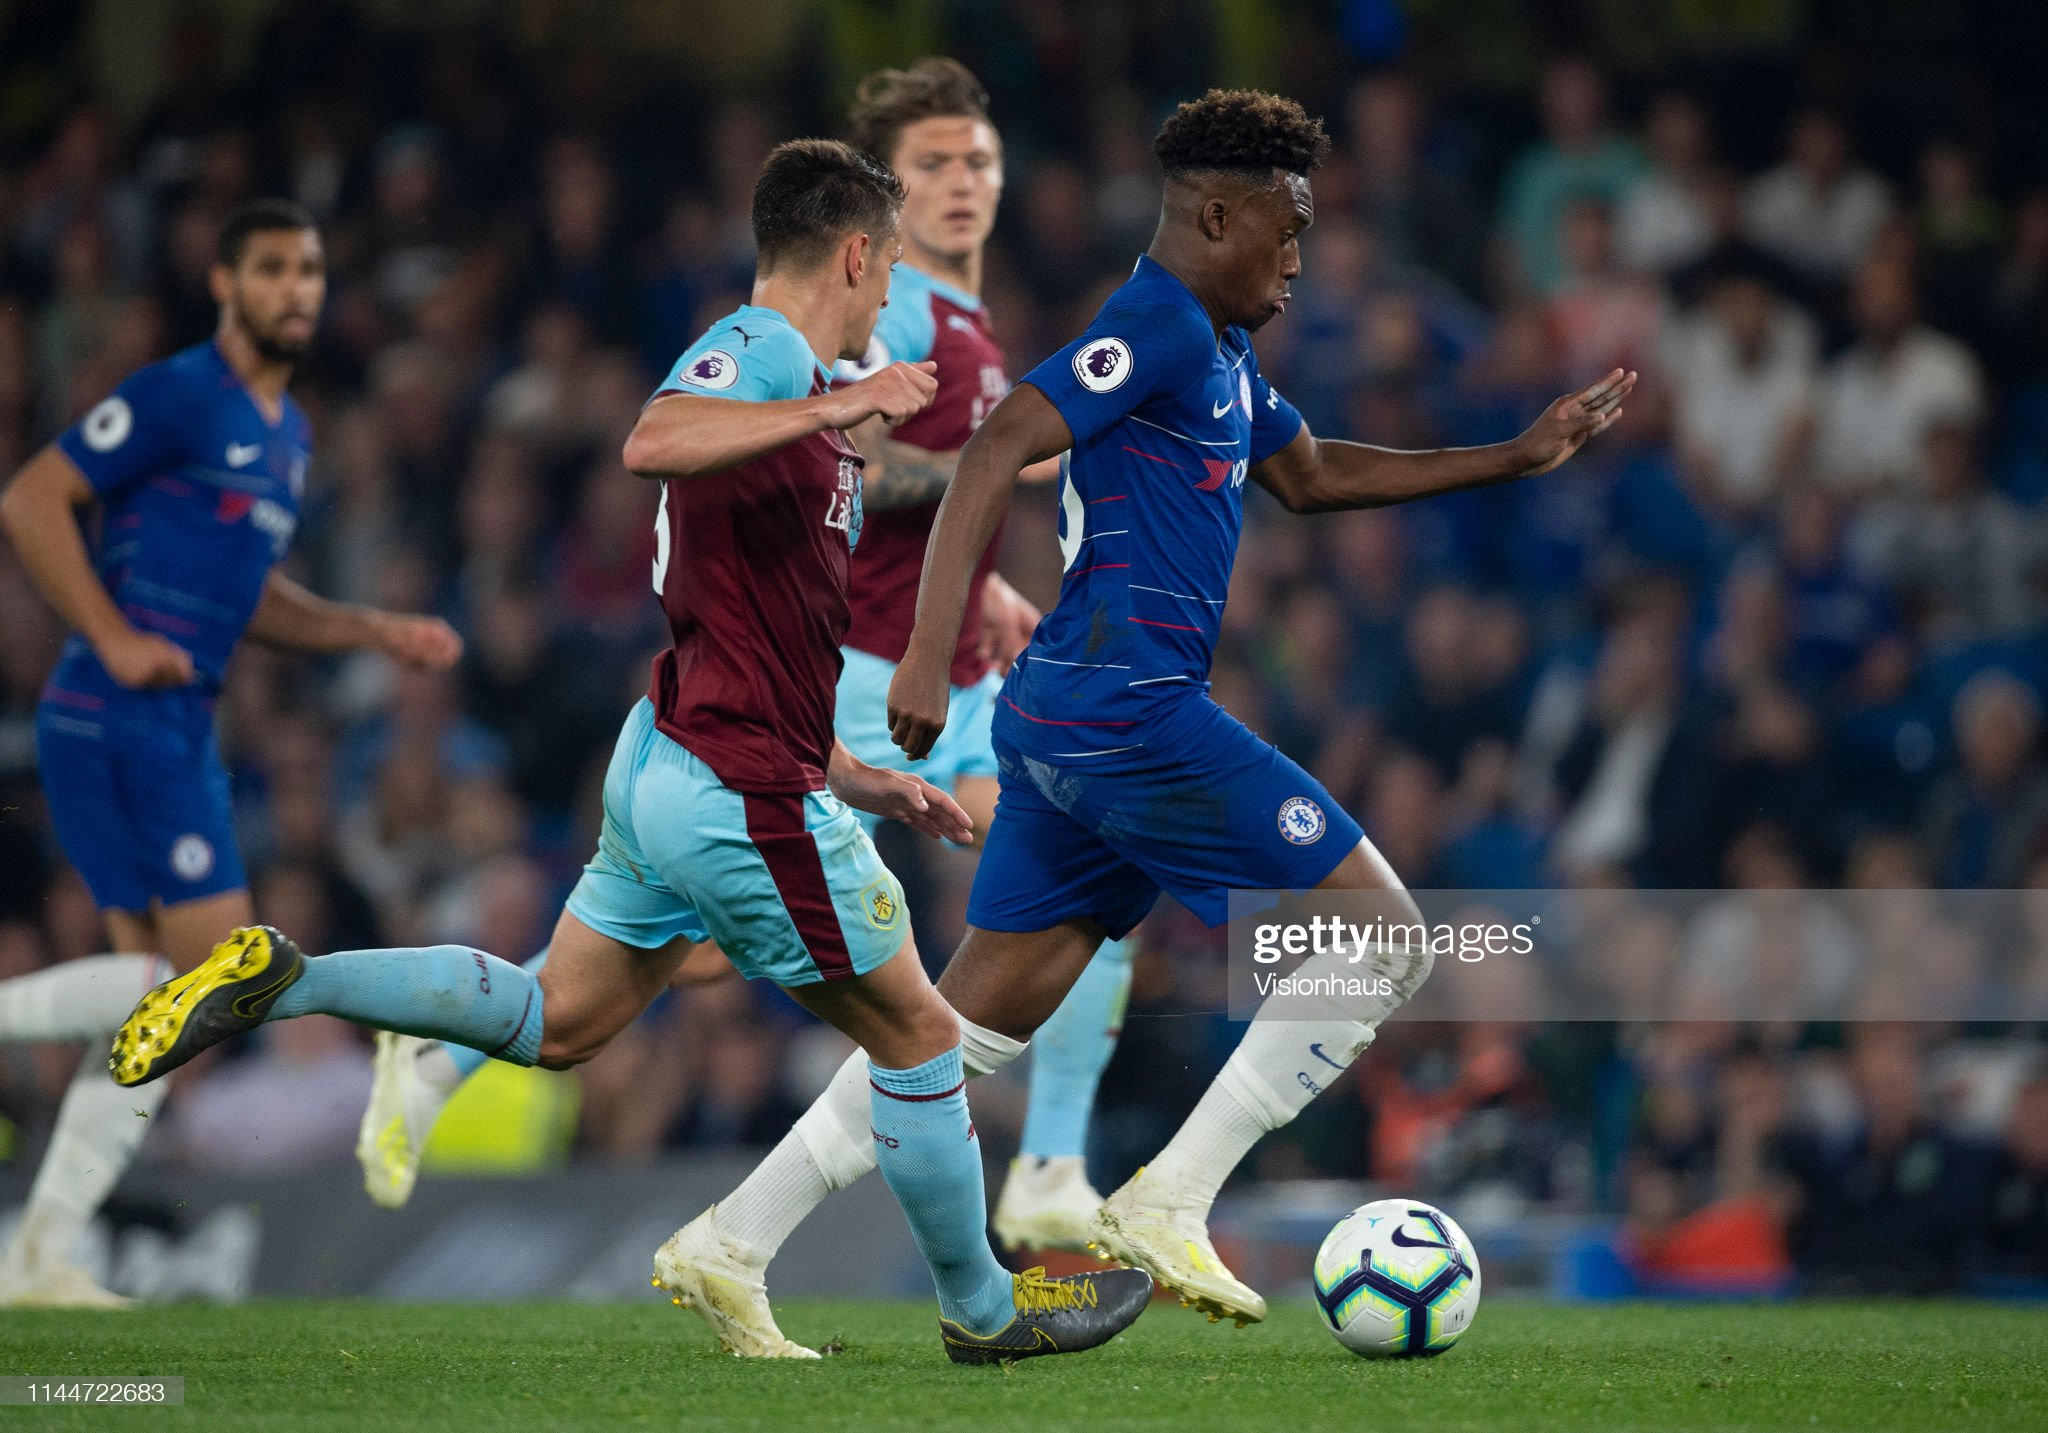 Burnley v Chelsea preview, prediction and odds